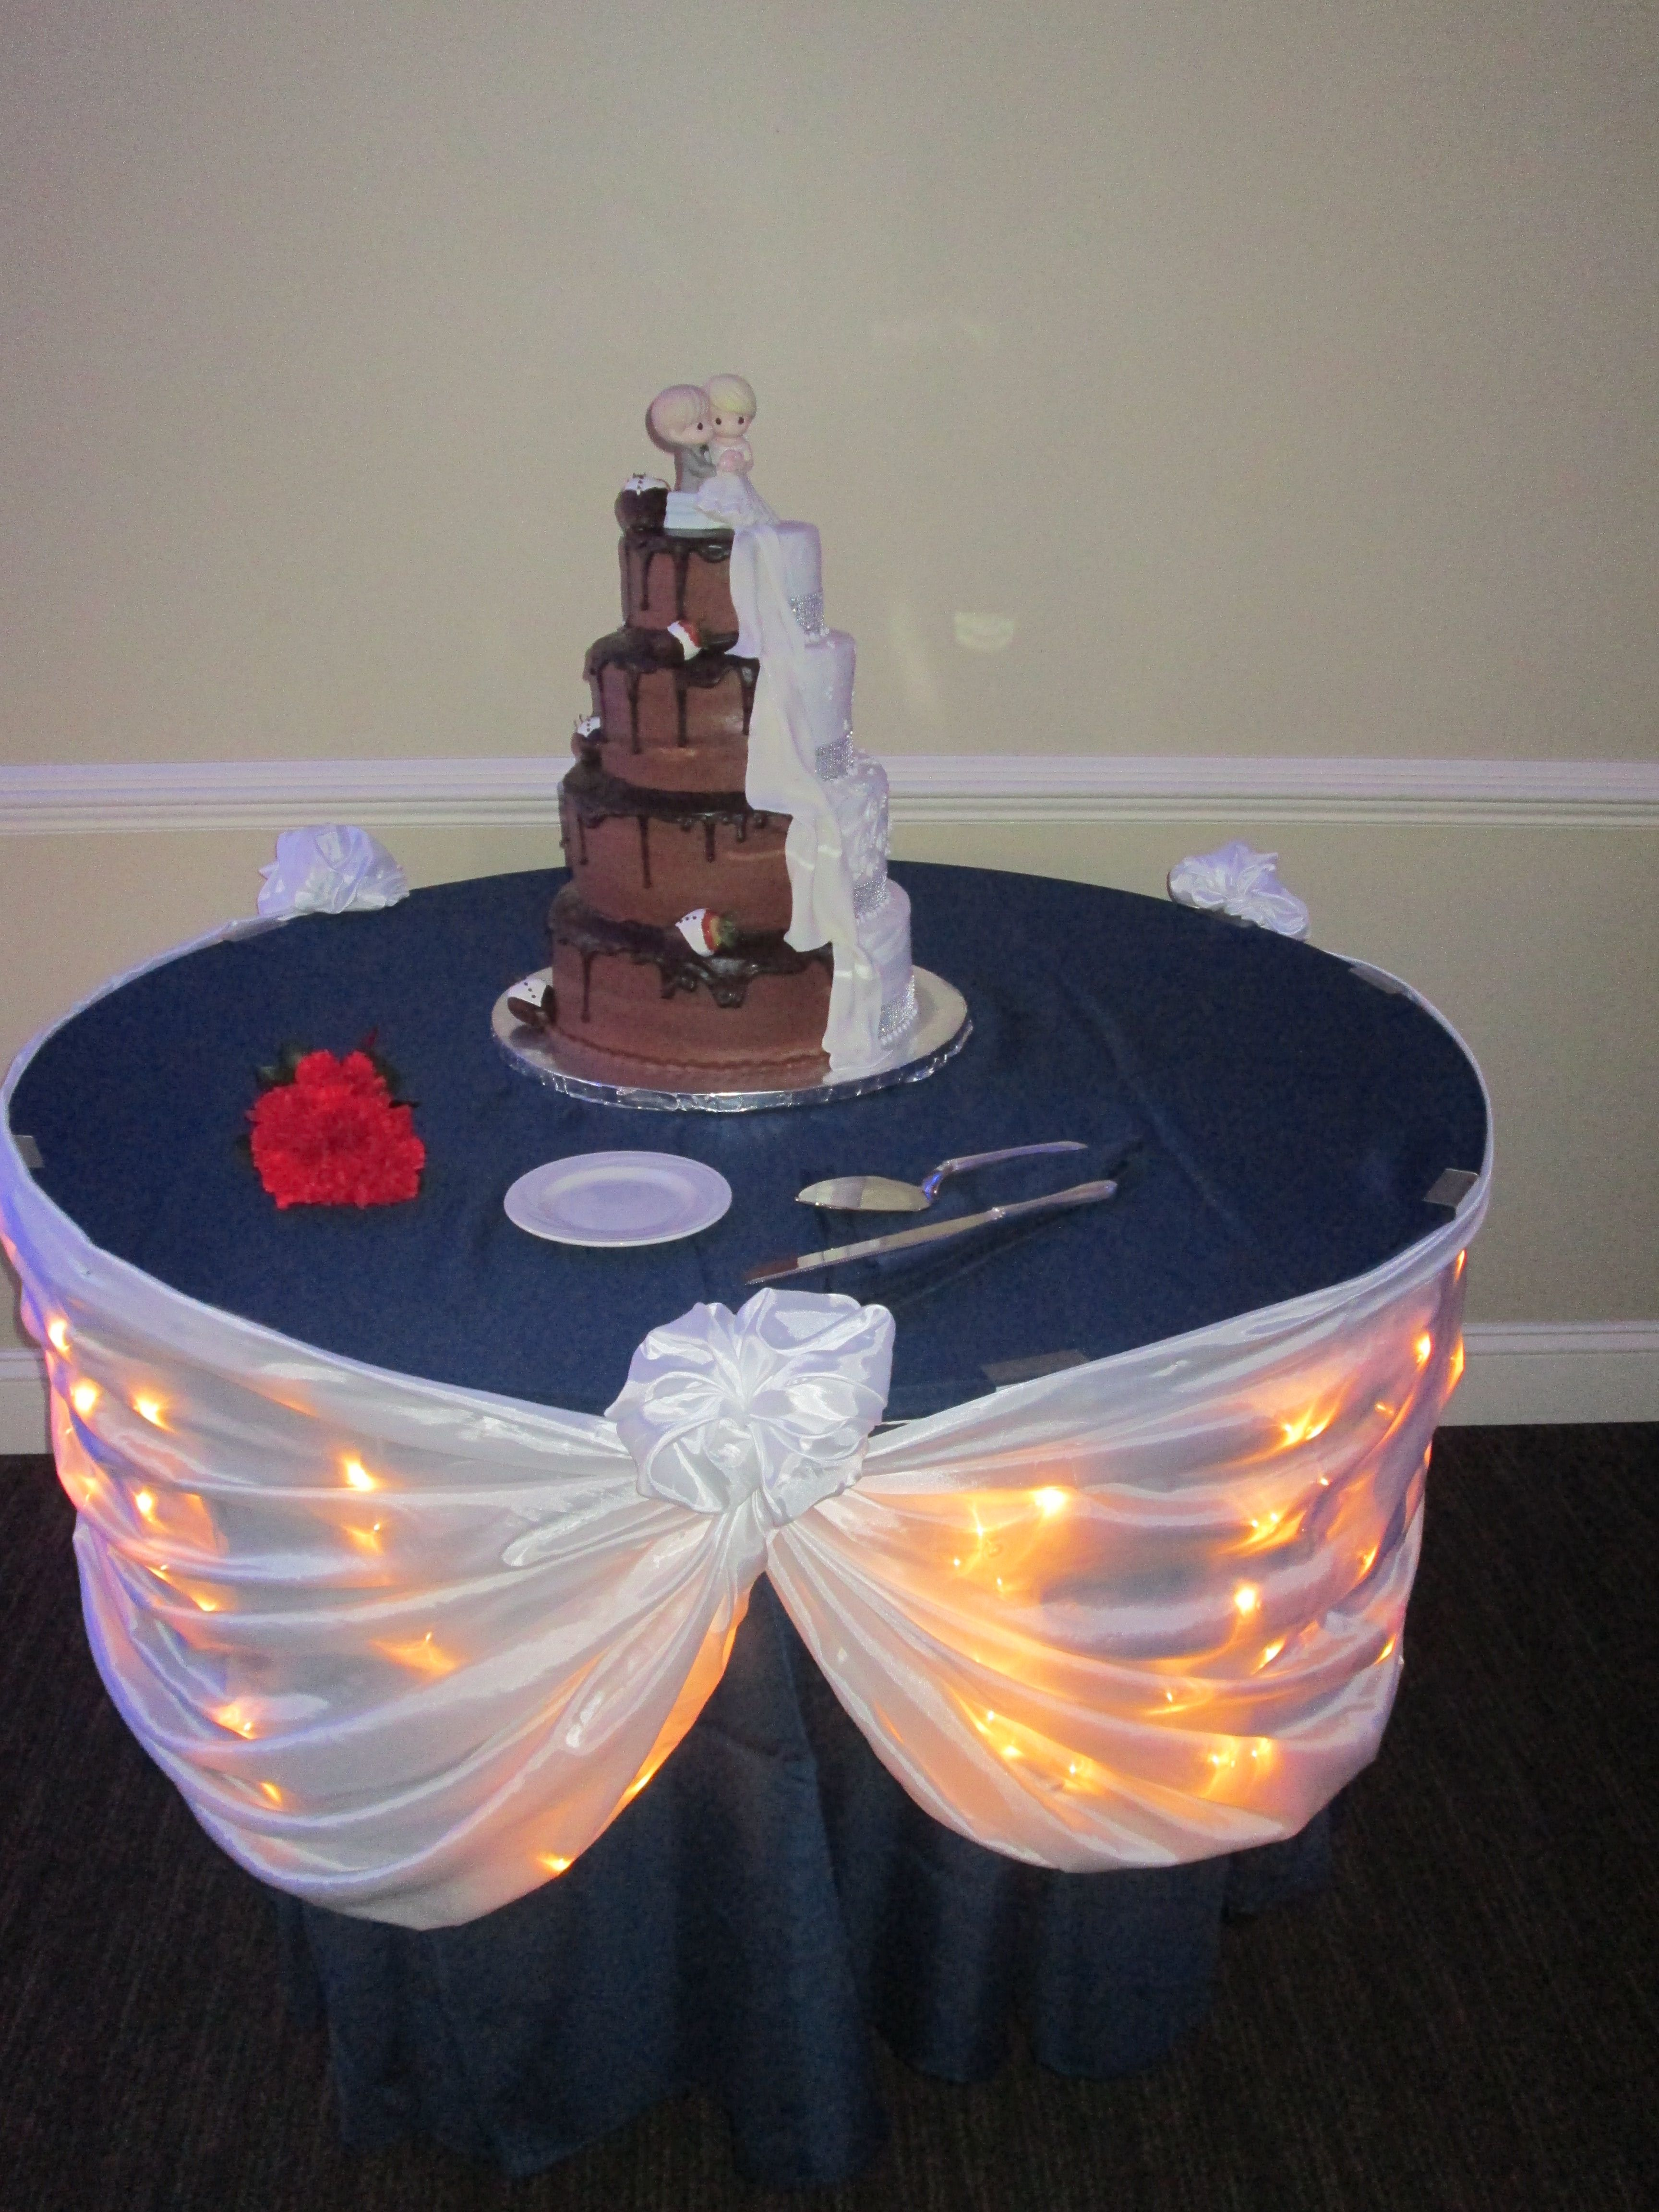 Cake table with lit up white swag on a navy table cloth wedding